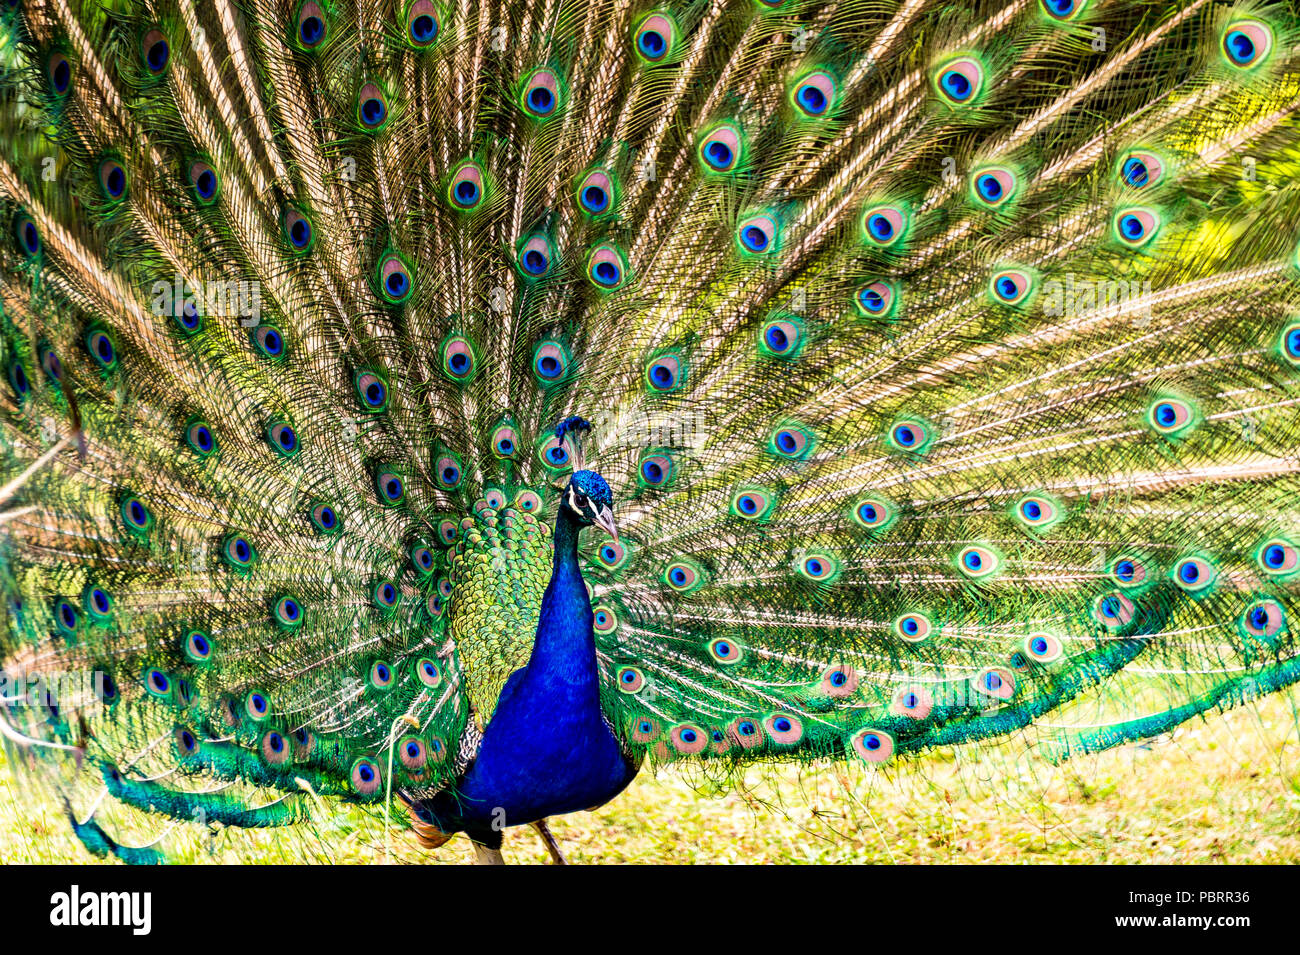 Peacock in a park in Paris, France Stock Photo